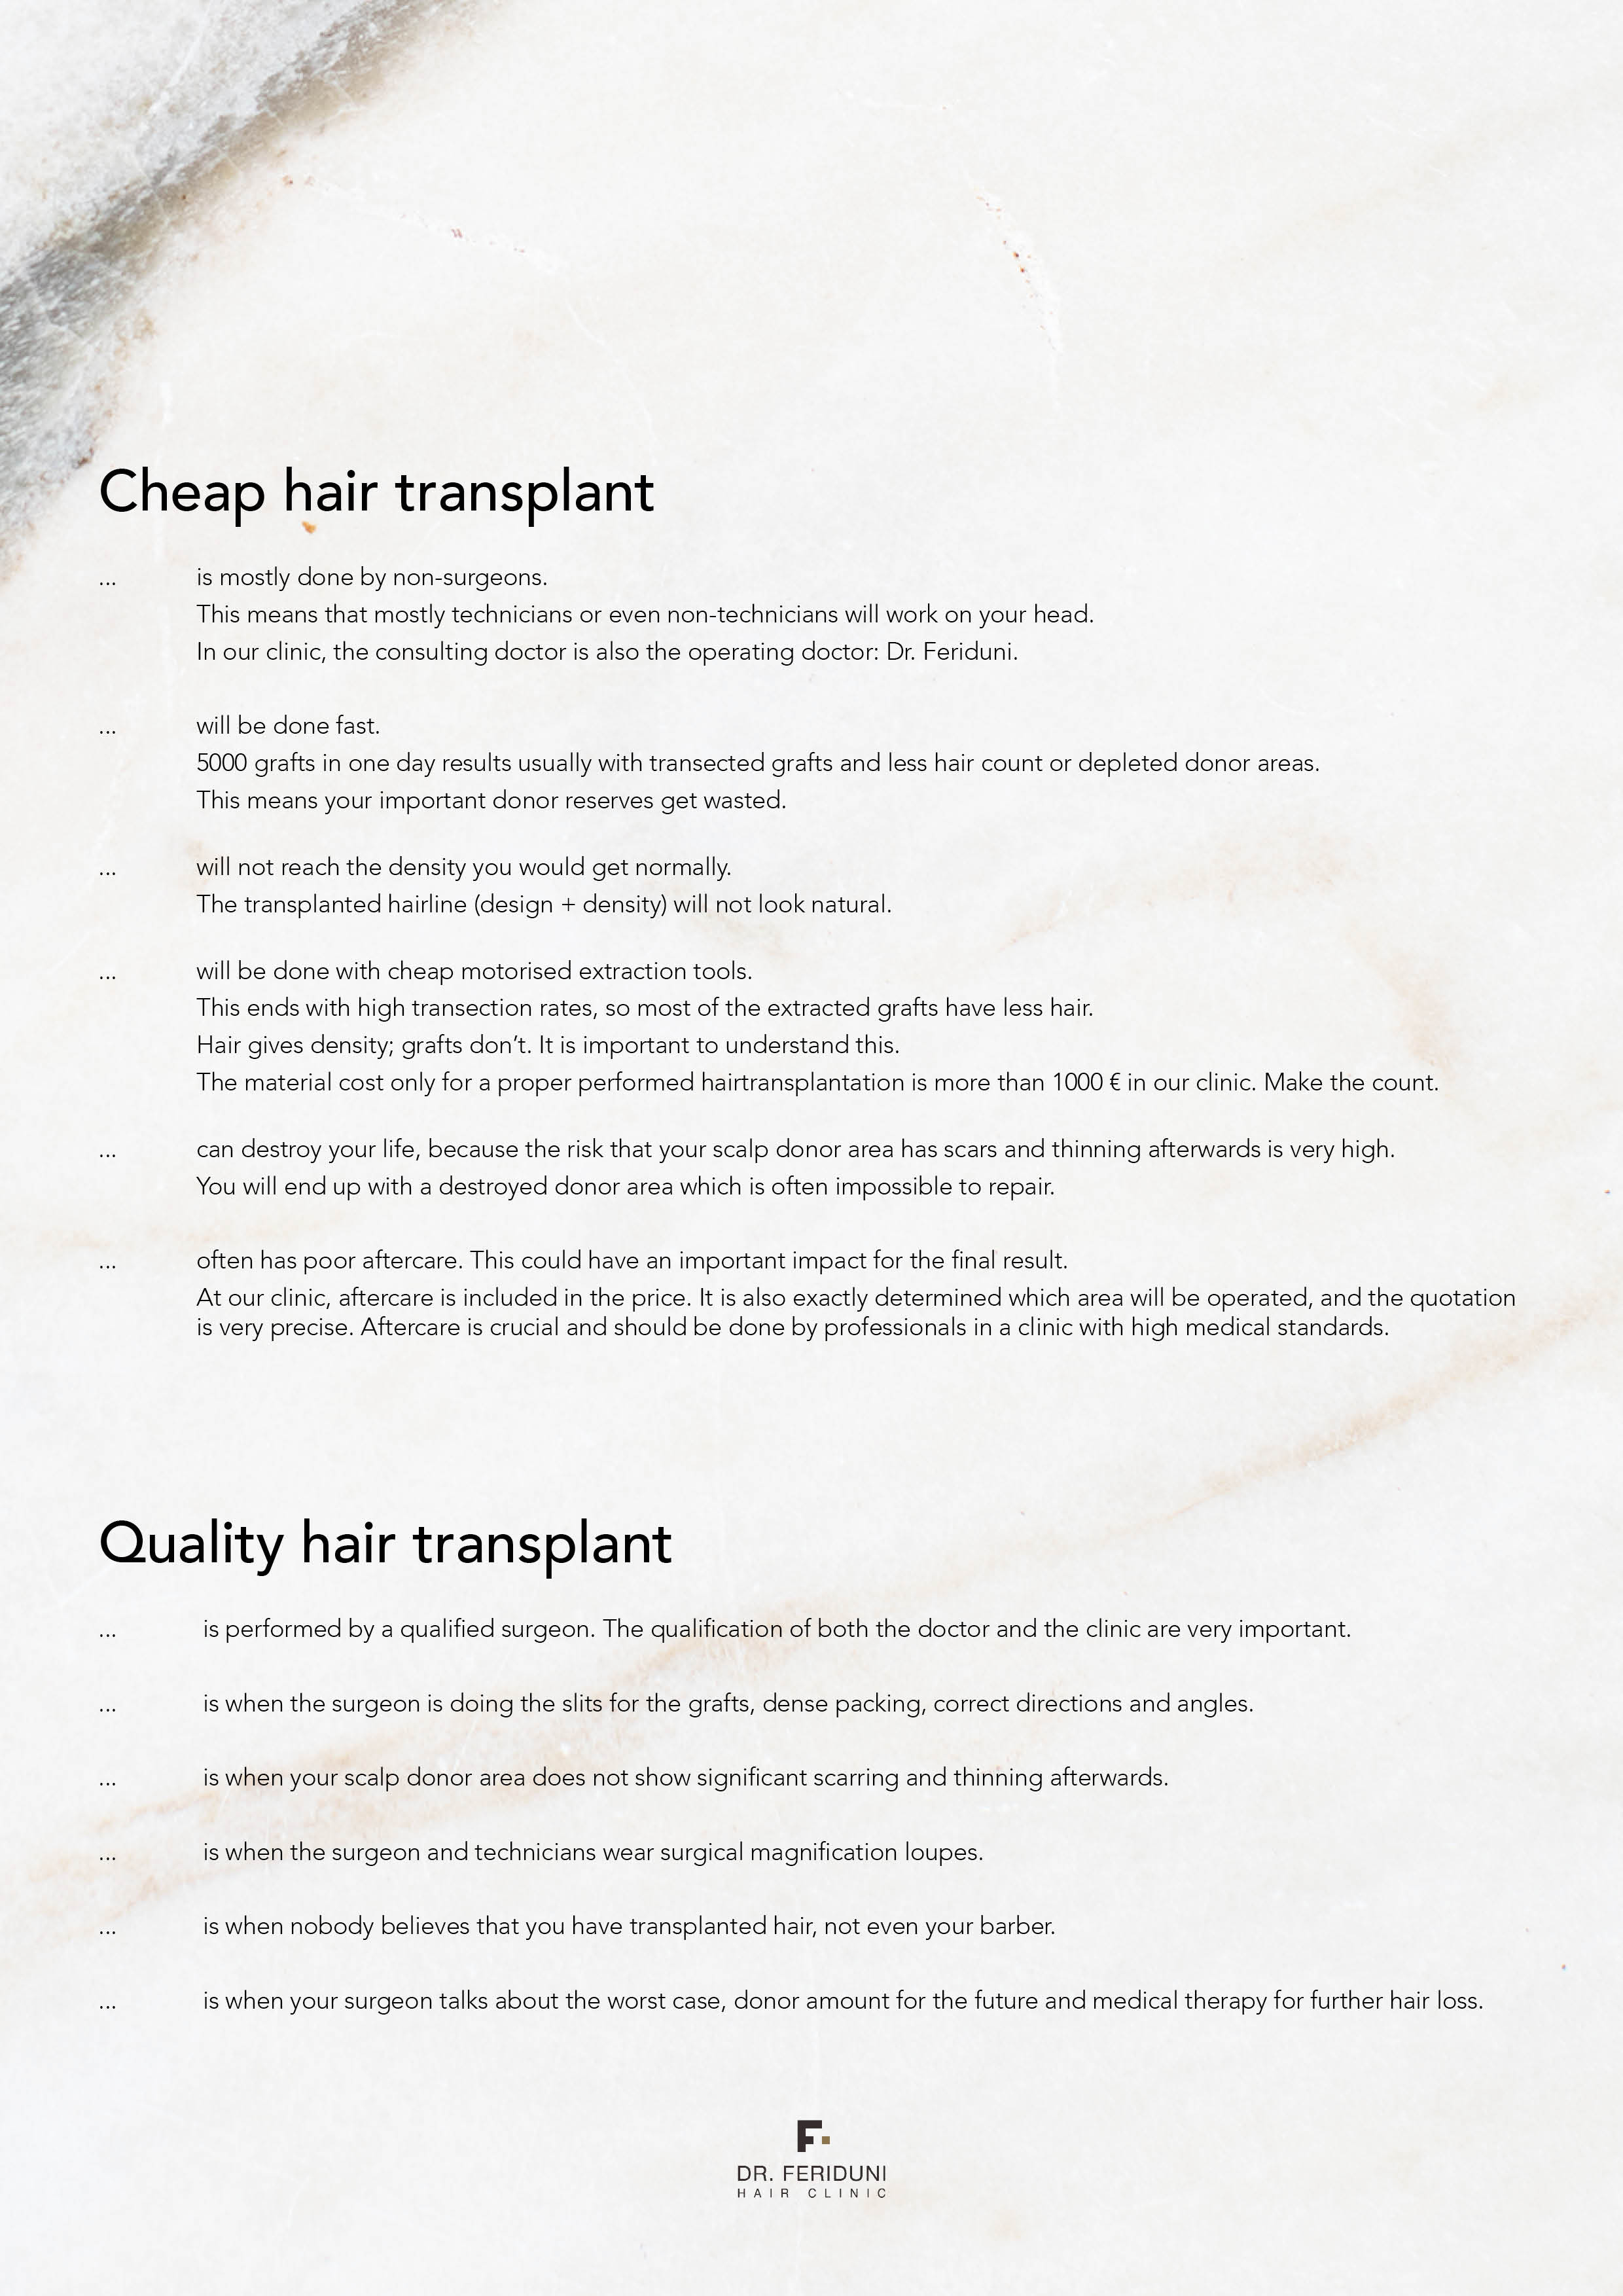 Cheap vs quality hair transplant